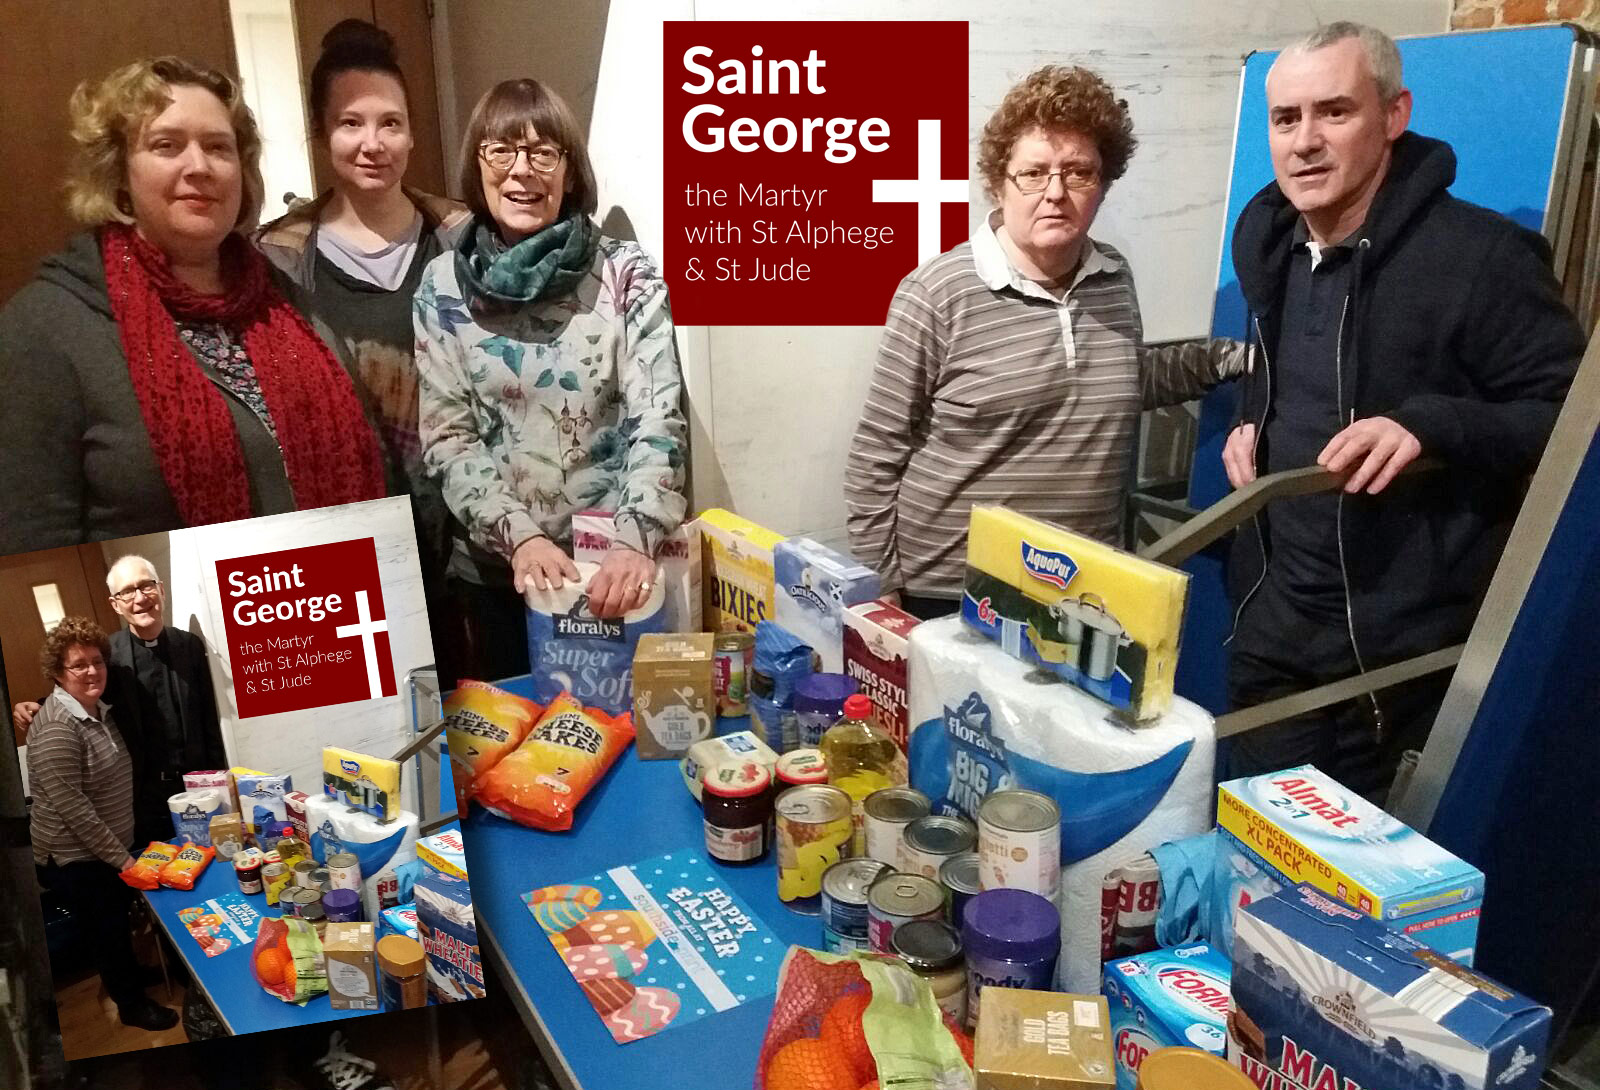 Our food parcel with the Rev'd Jonathan Sedgwick, Jane and the team at Saint George The Martyr's foodbank.